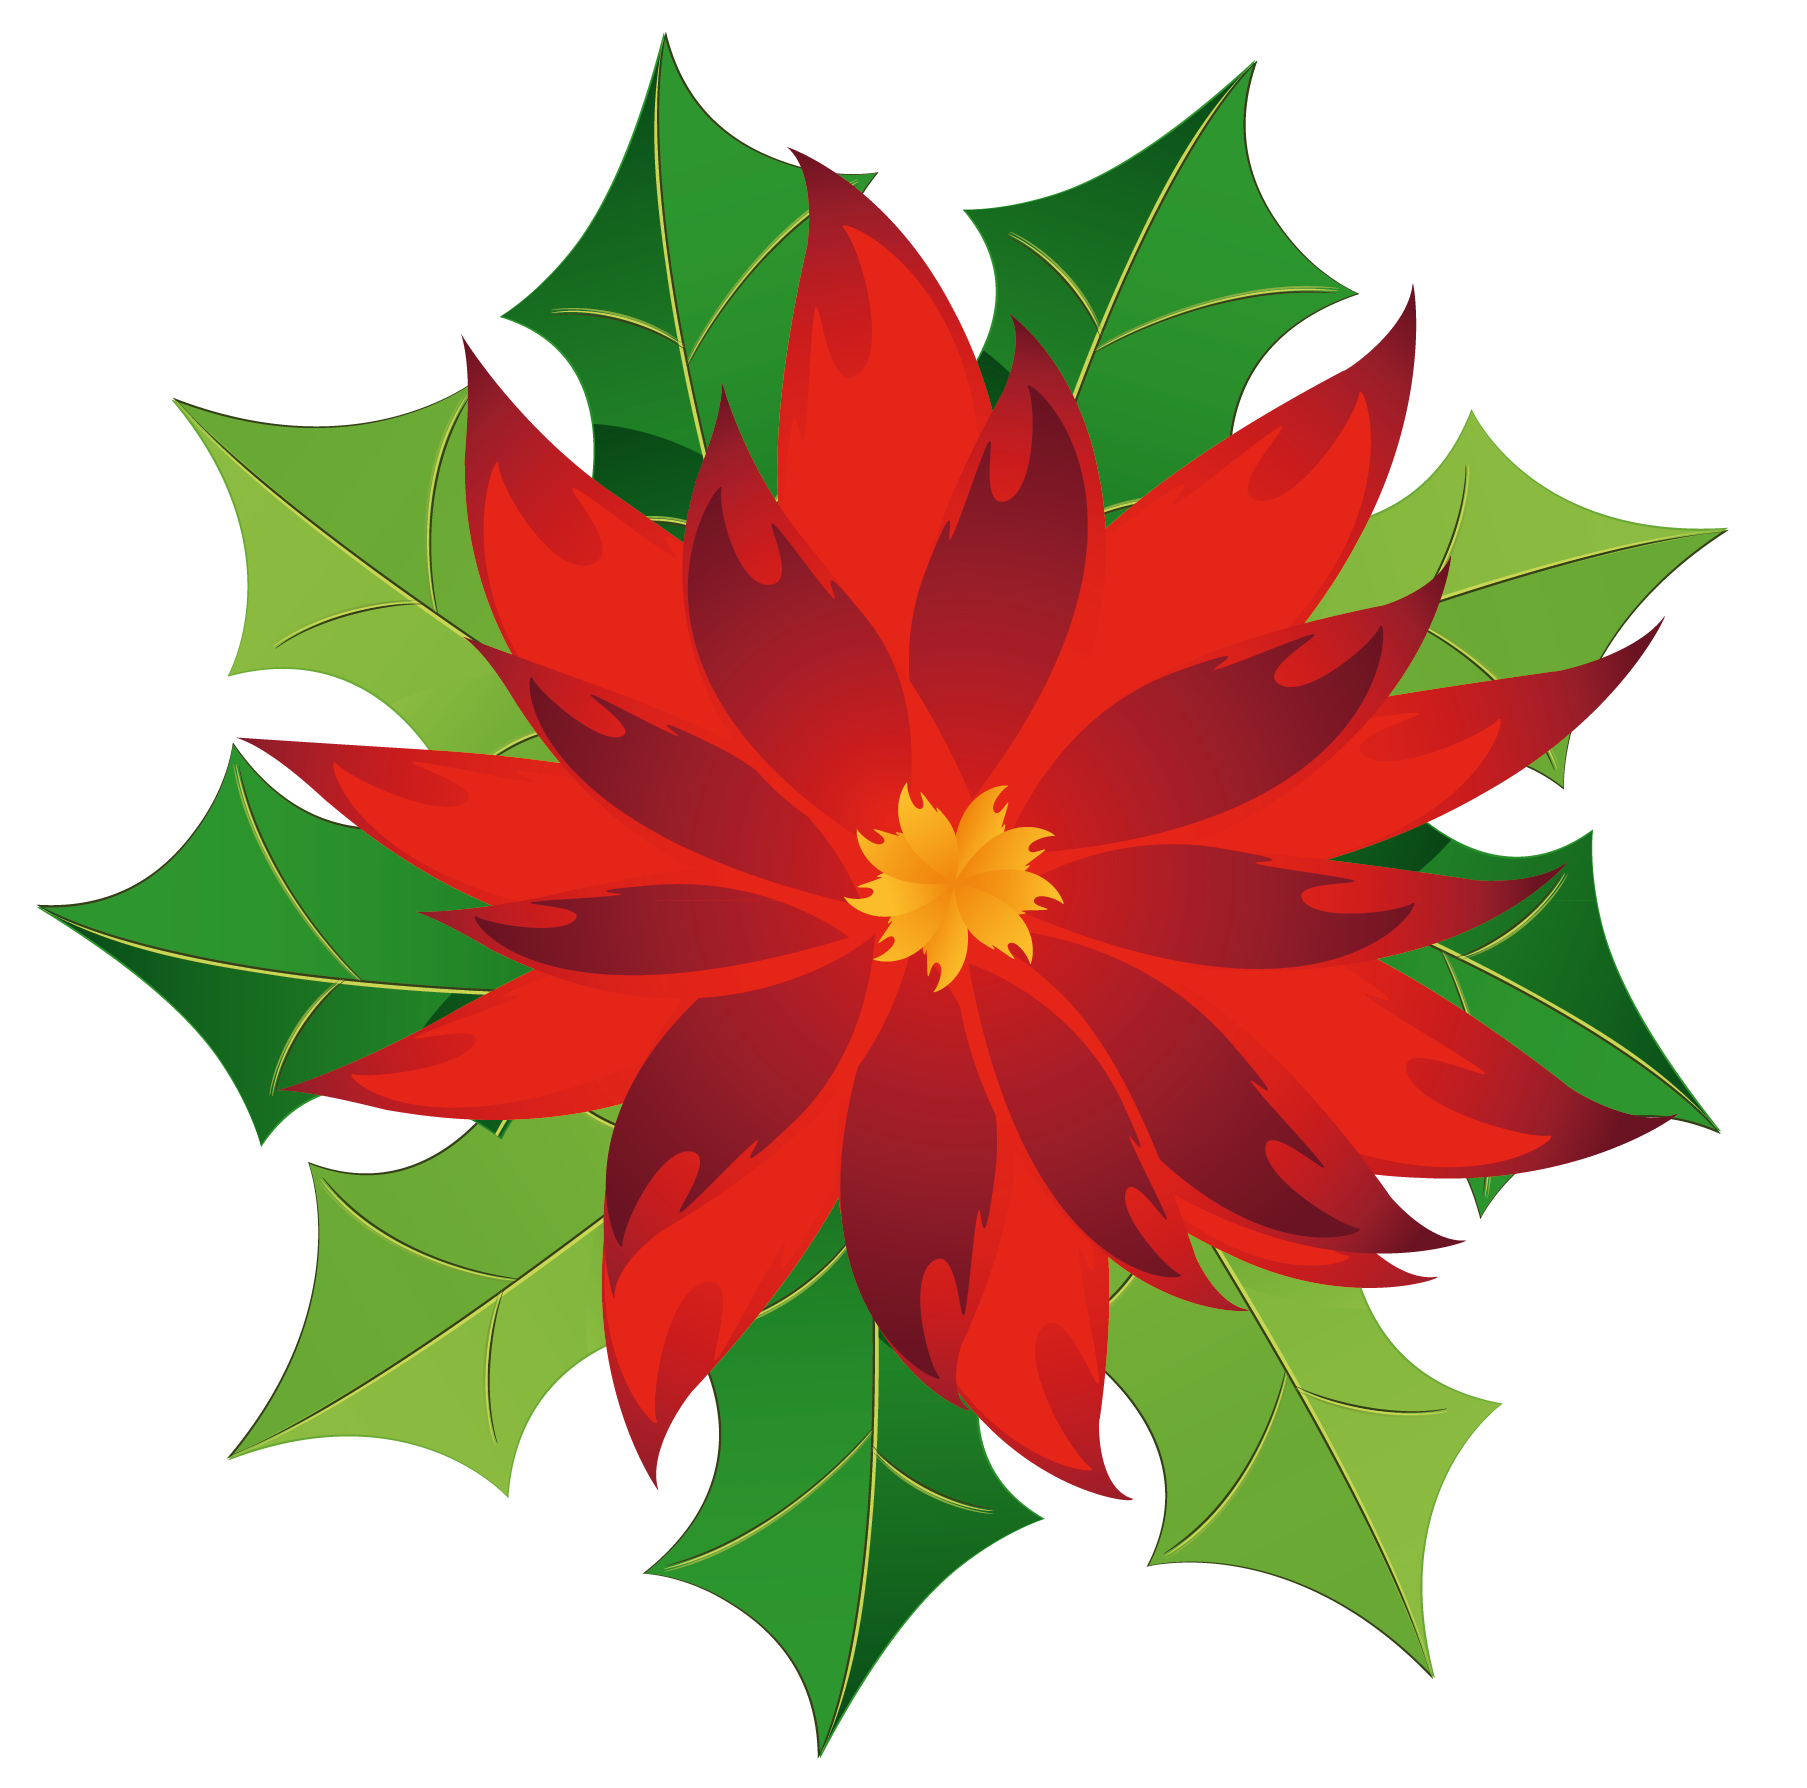 poinsettia pictures cliparts co poinsettia clip art borders poinsettia clipart for embroidery